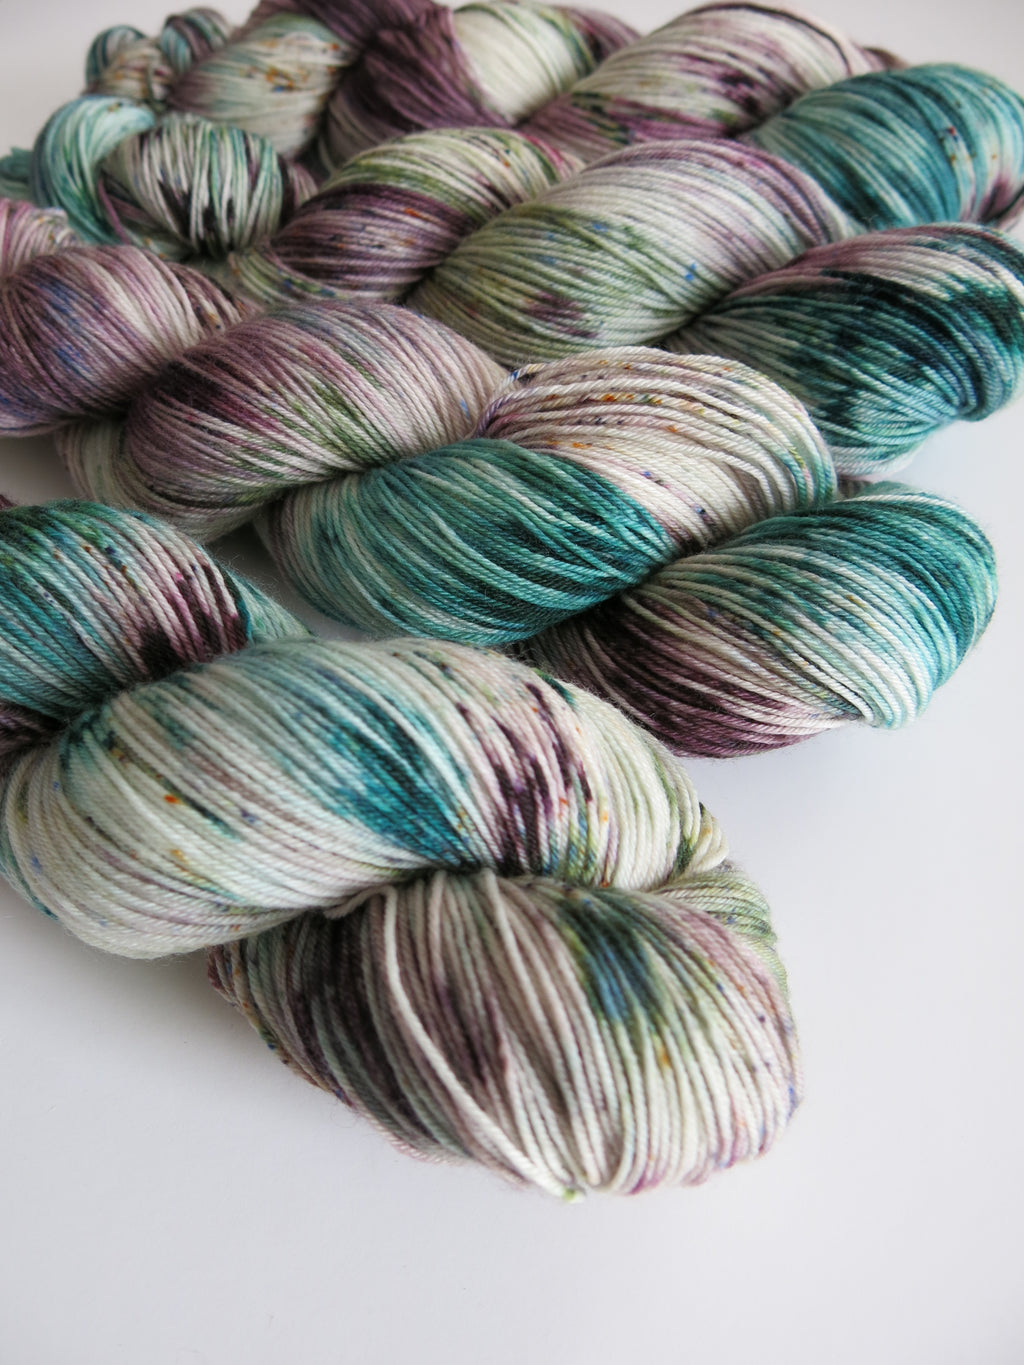 brown and green speckled yarn skeins for knitting or crochet